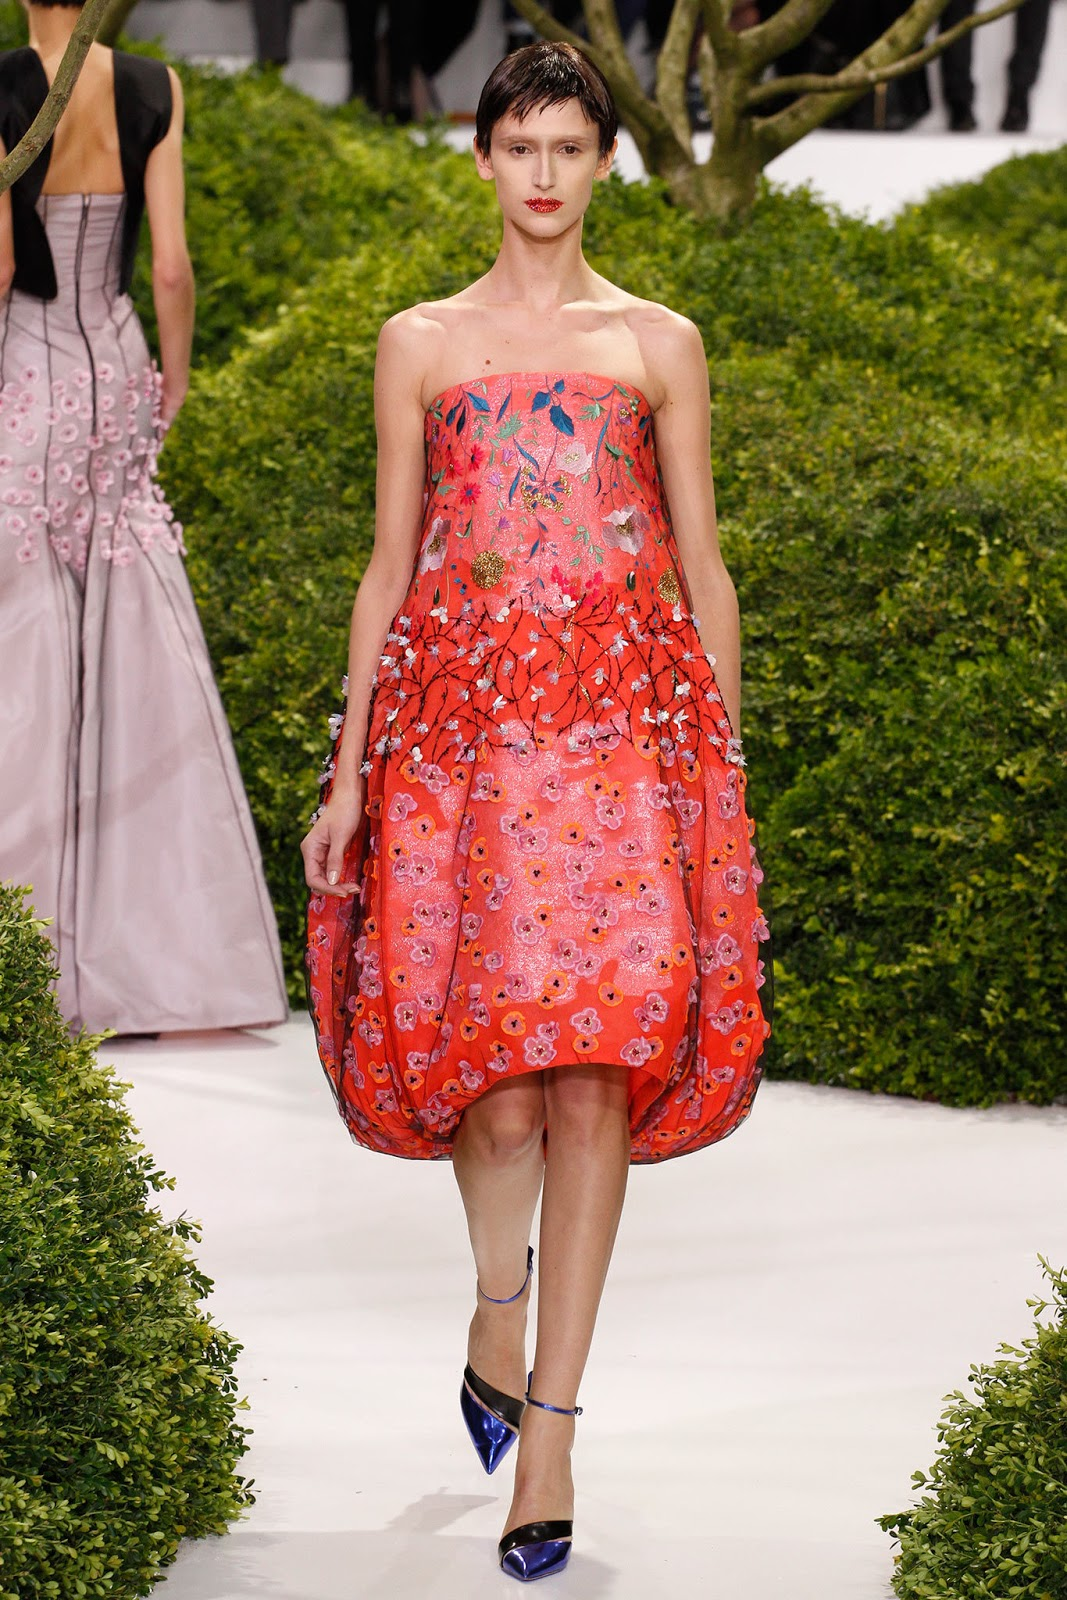 Christian Dior Haute Couture Spring/Summer 2013 (RS)